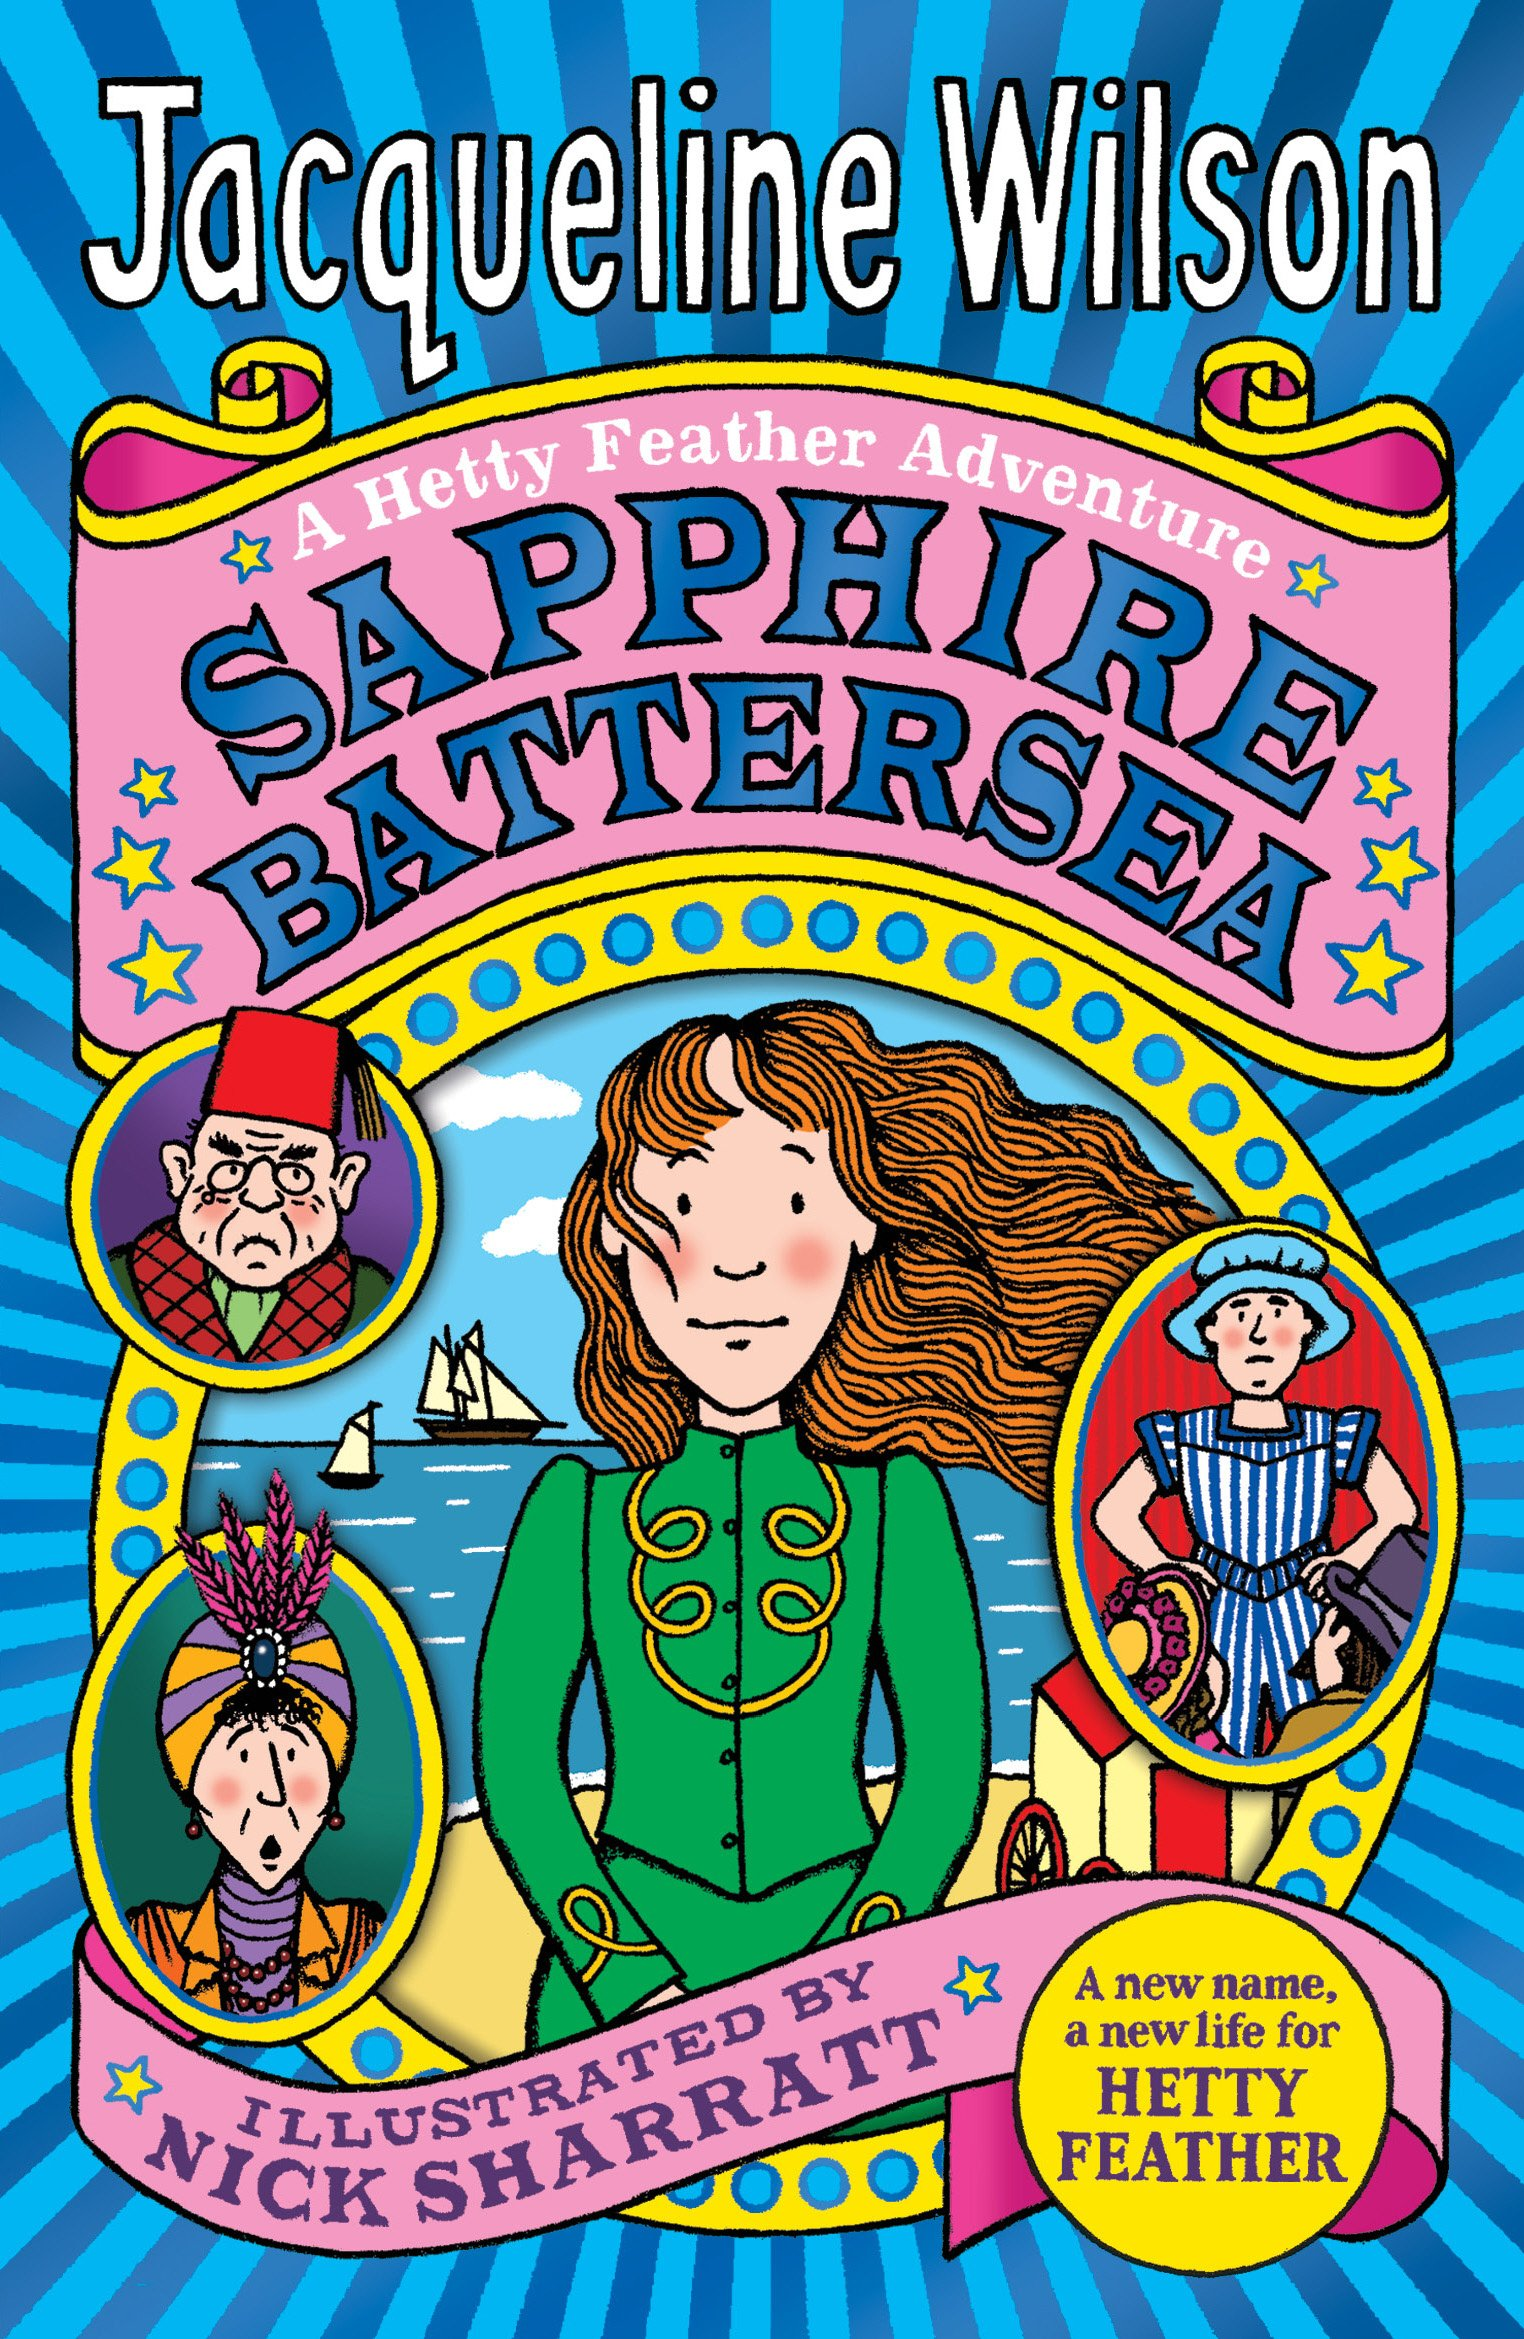 sapphire-battersea-hetty-feather